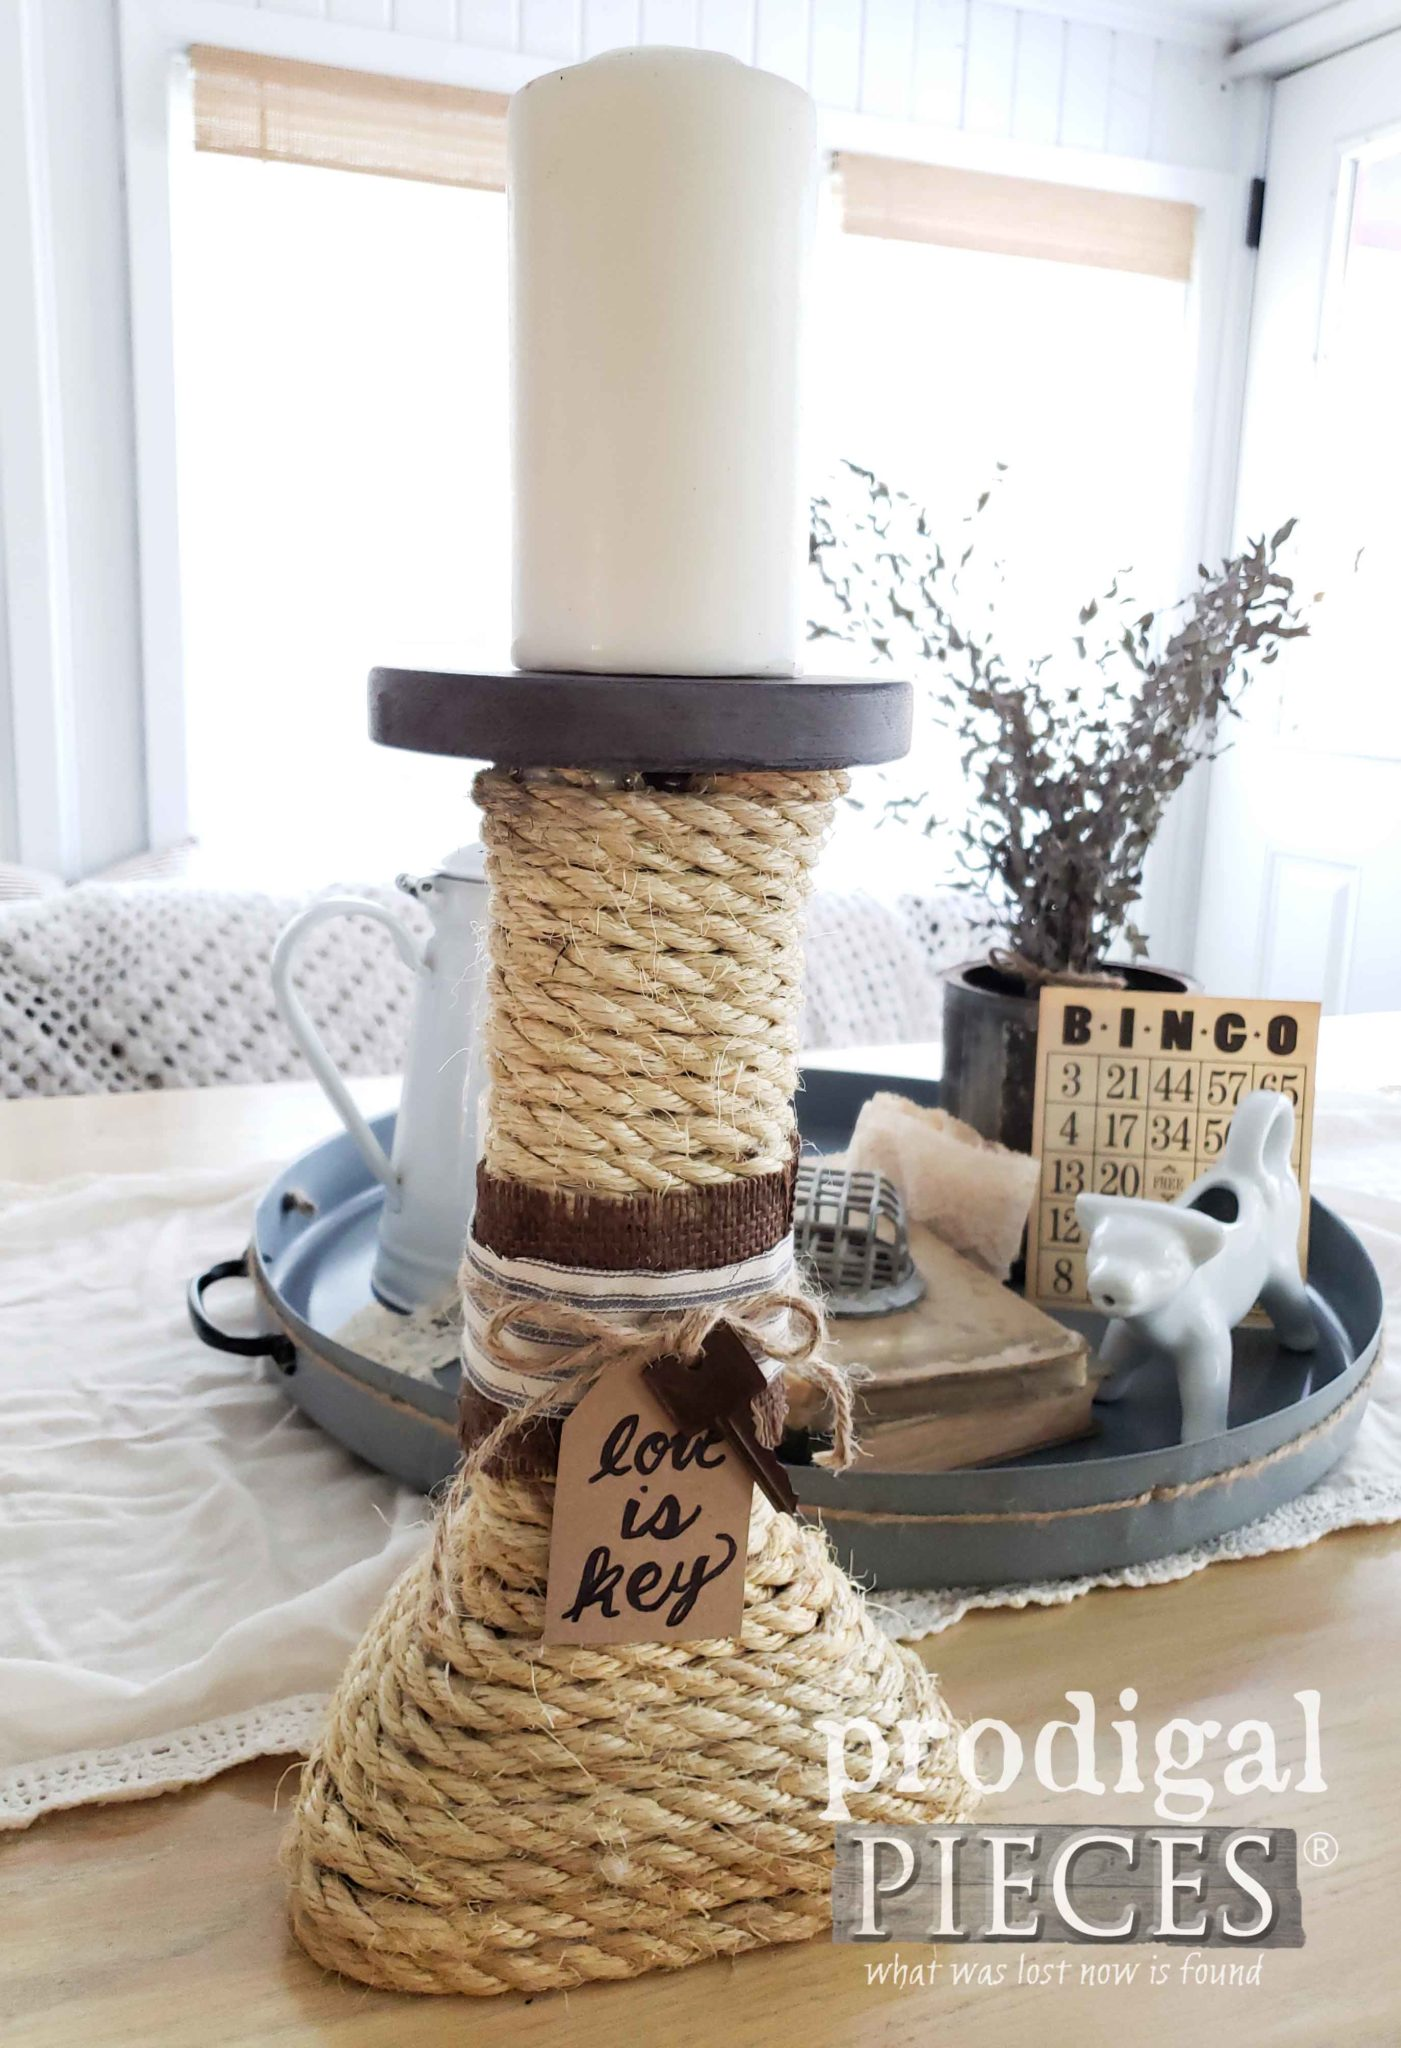 Upcycled Sisal Rope Candle Holder Made from Broken Table Legs | DIY by Larissa of Prodigal Pieces | prodigalpieces.com